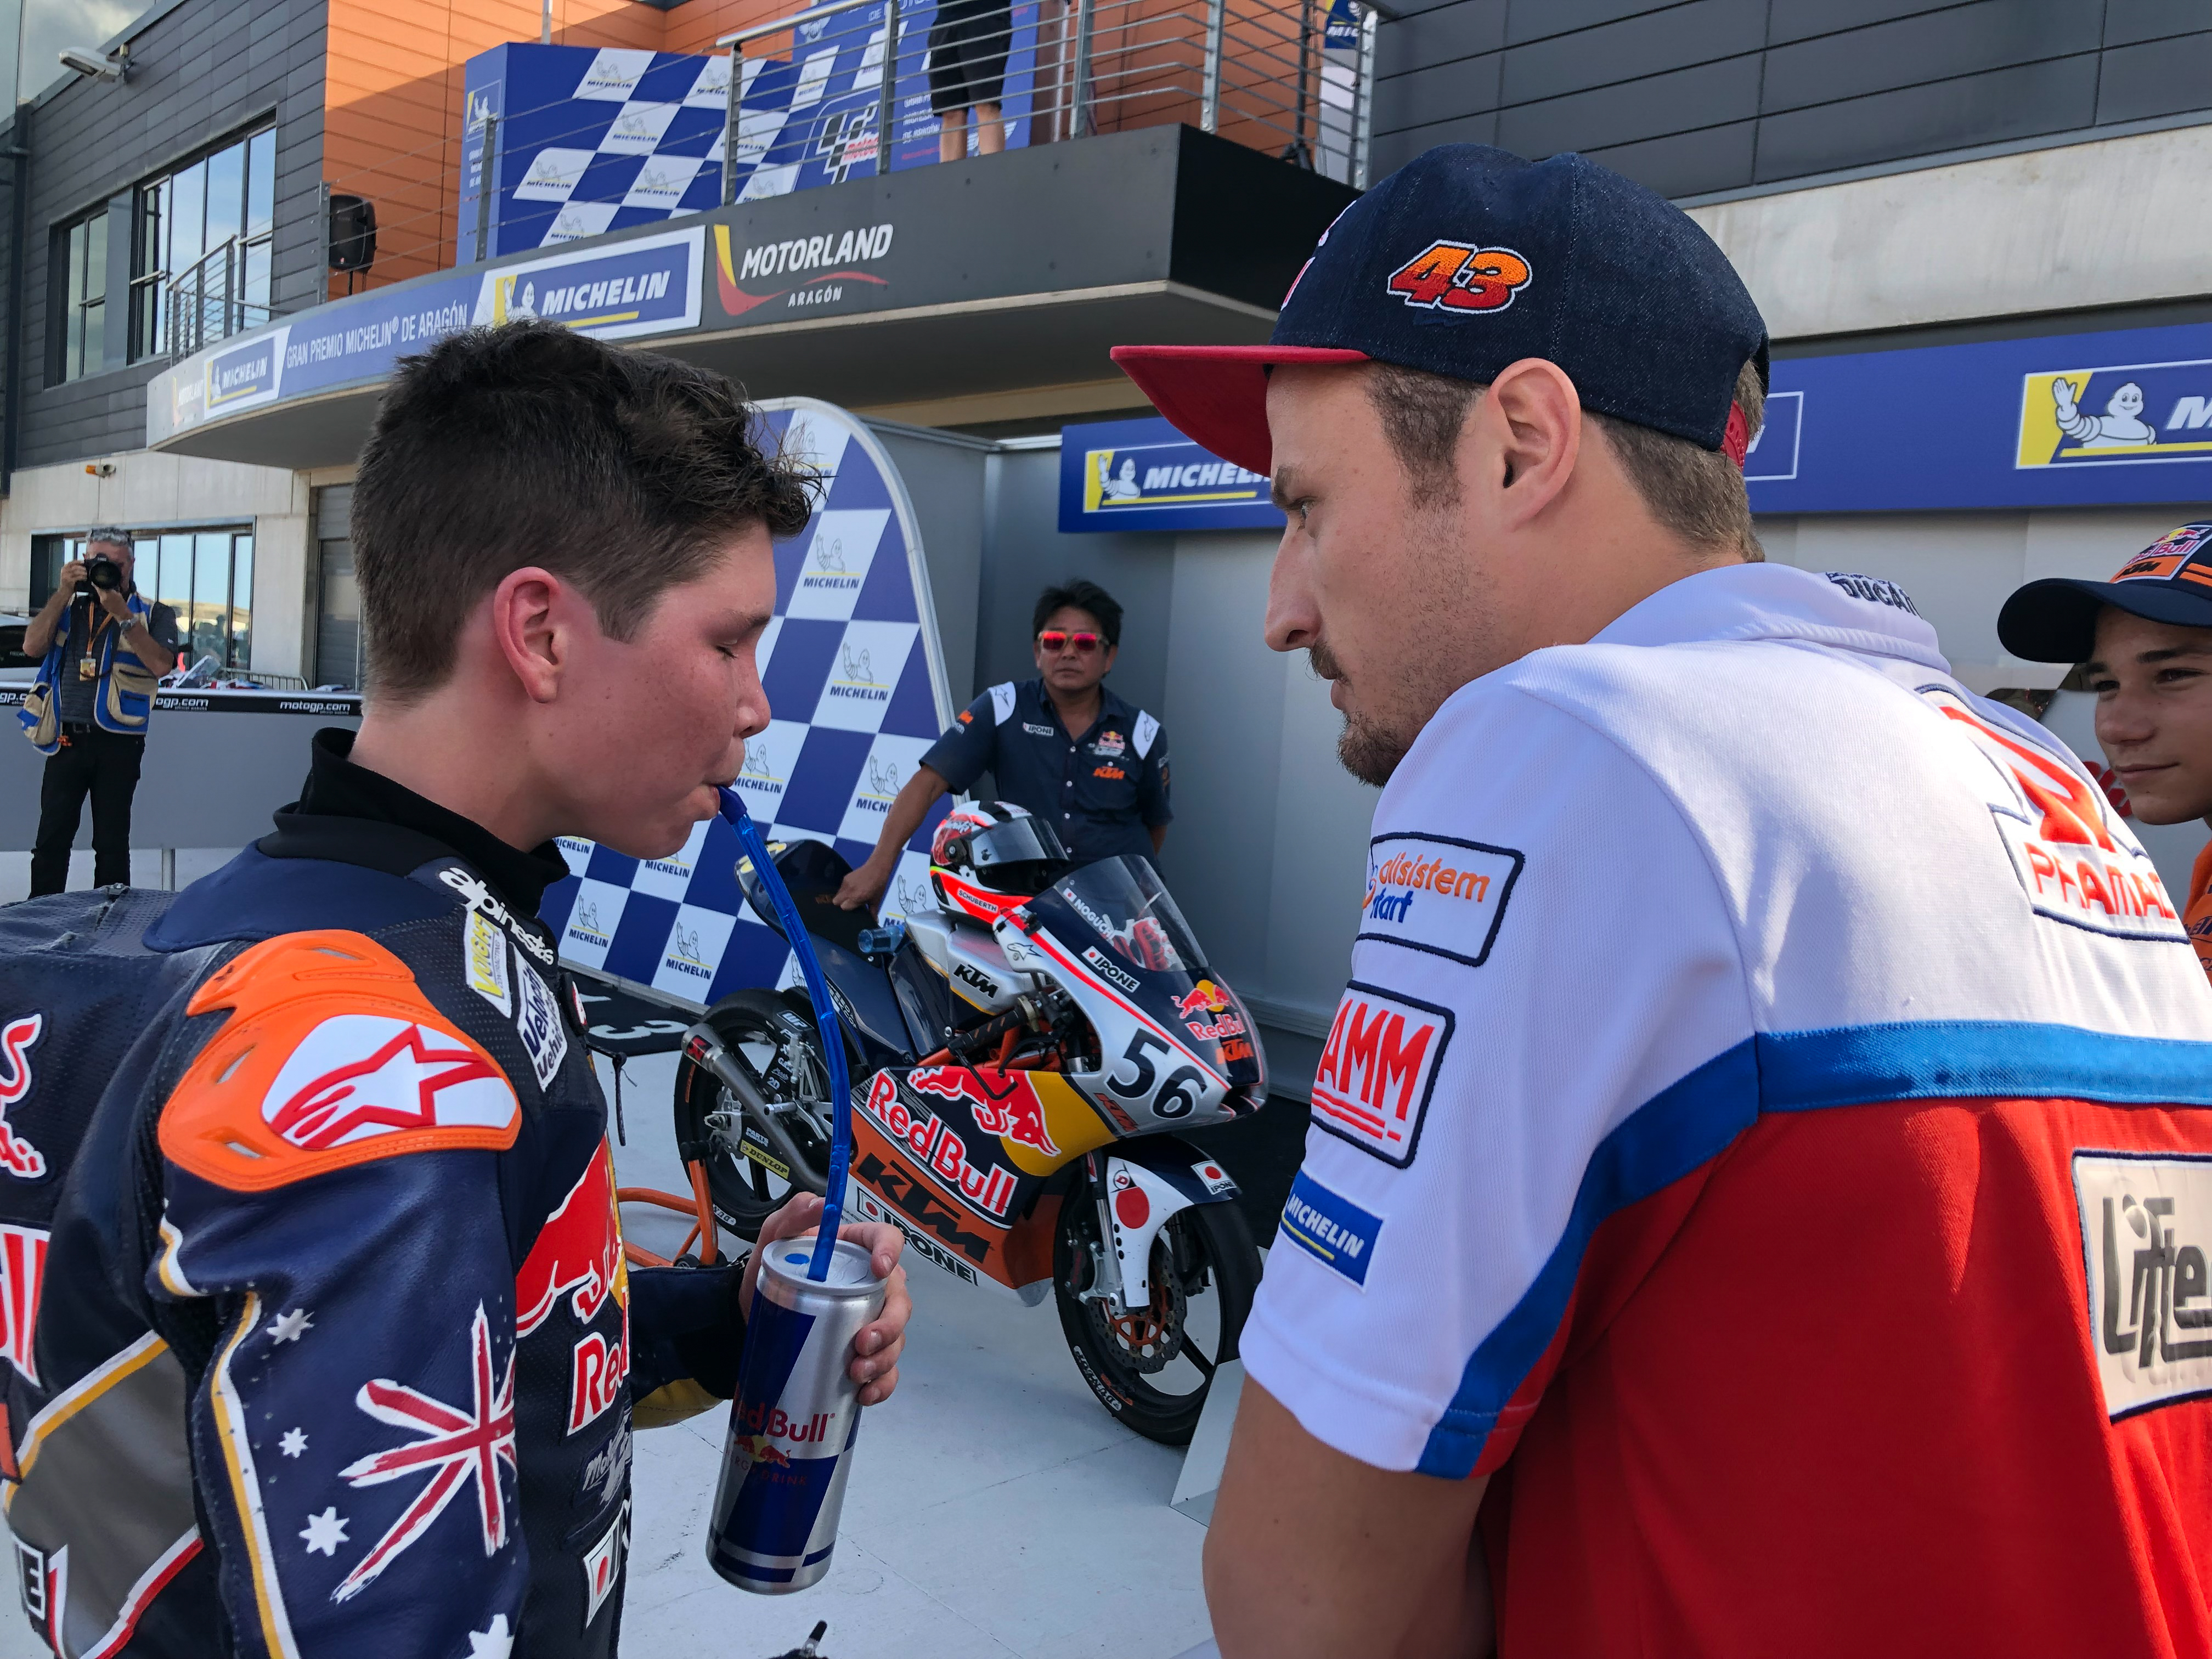 Our sponsored rider Billy van Eerde gets advice from his mentor Jack Miller